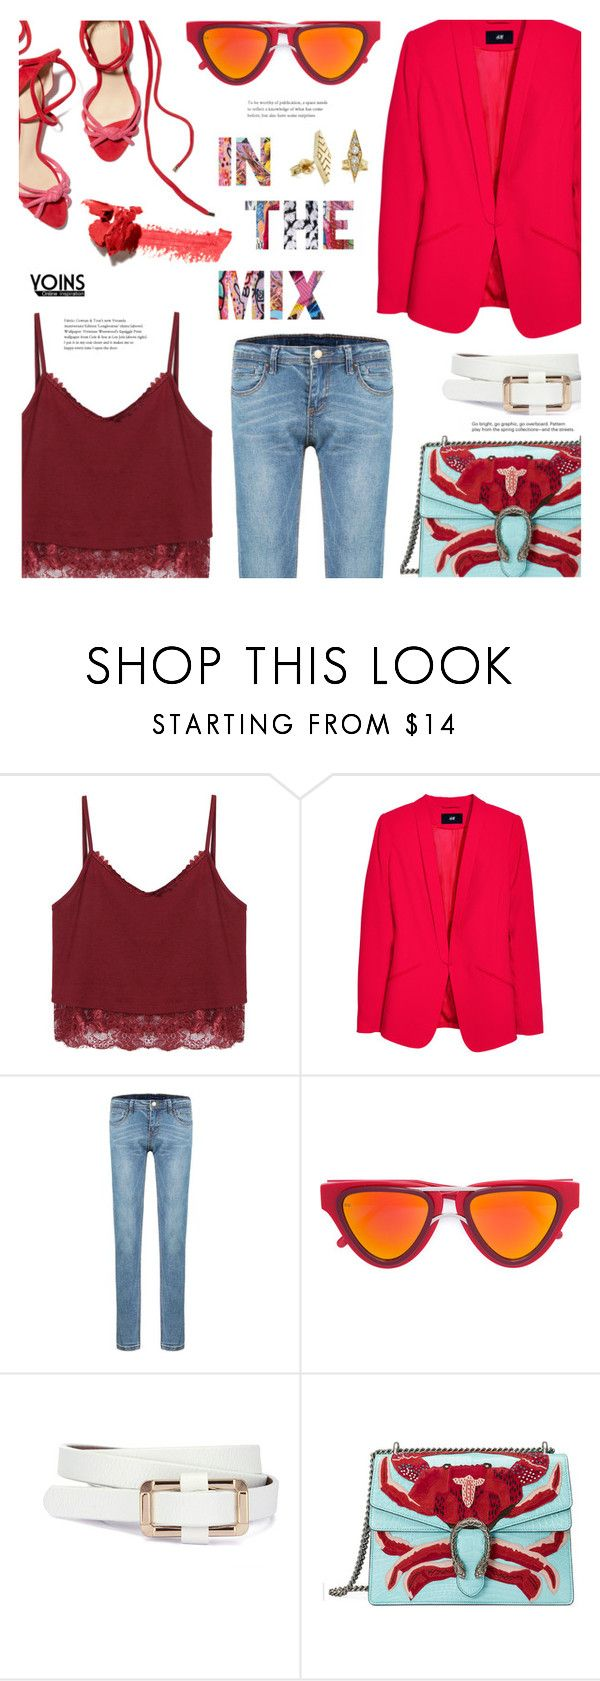 """""""Yoins #14"""" by chocolate-addicted-angel ❤ liked on Polyvore featuring H&M, Smoke x Mirrors, Gucci, Grace Lee Designs, Beautycounter, yoins, yoinscollection and loveyoins"""